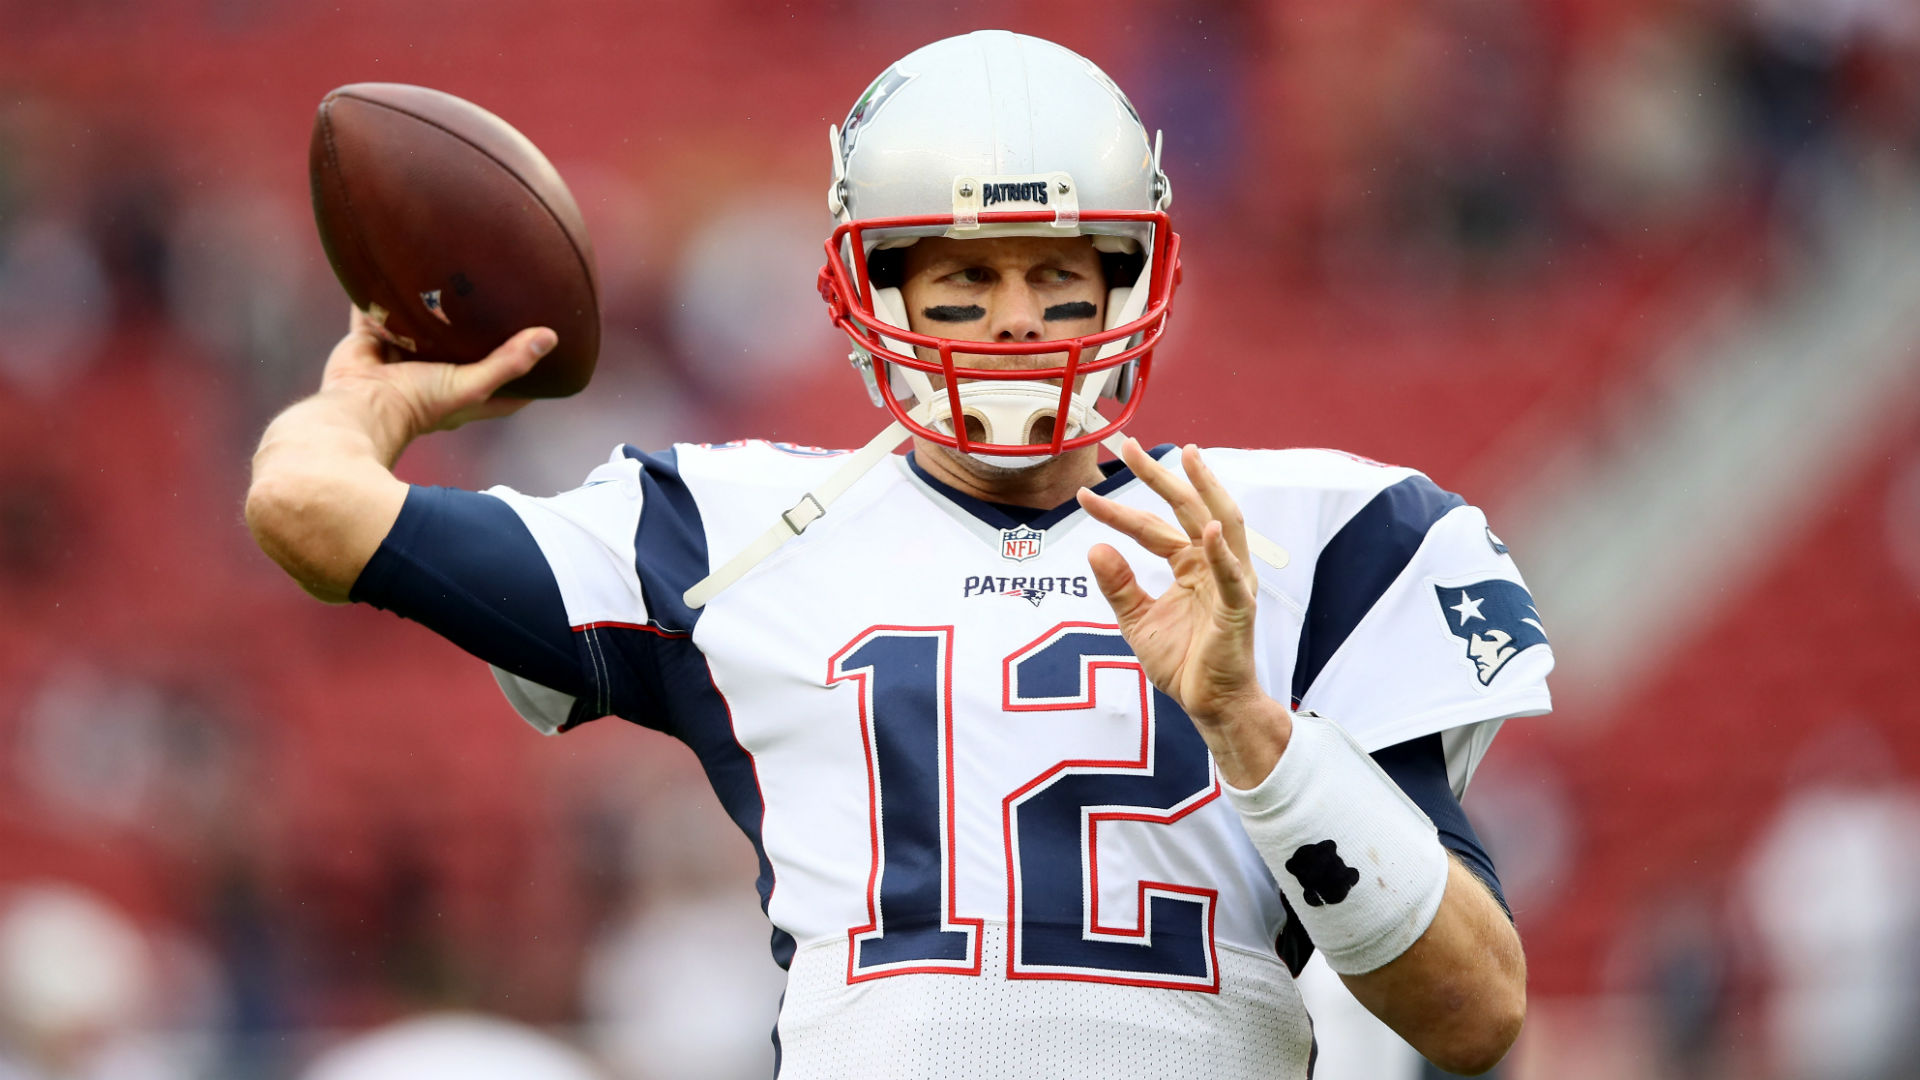 Patriots vs. Buccaneers: How to watch, live stream 'Thursday Night Football'